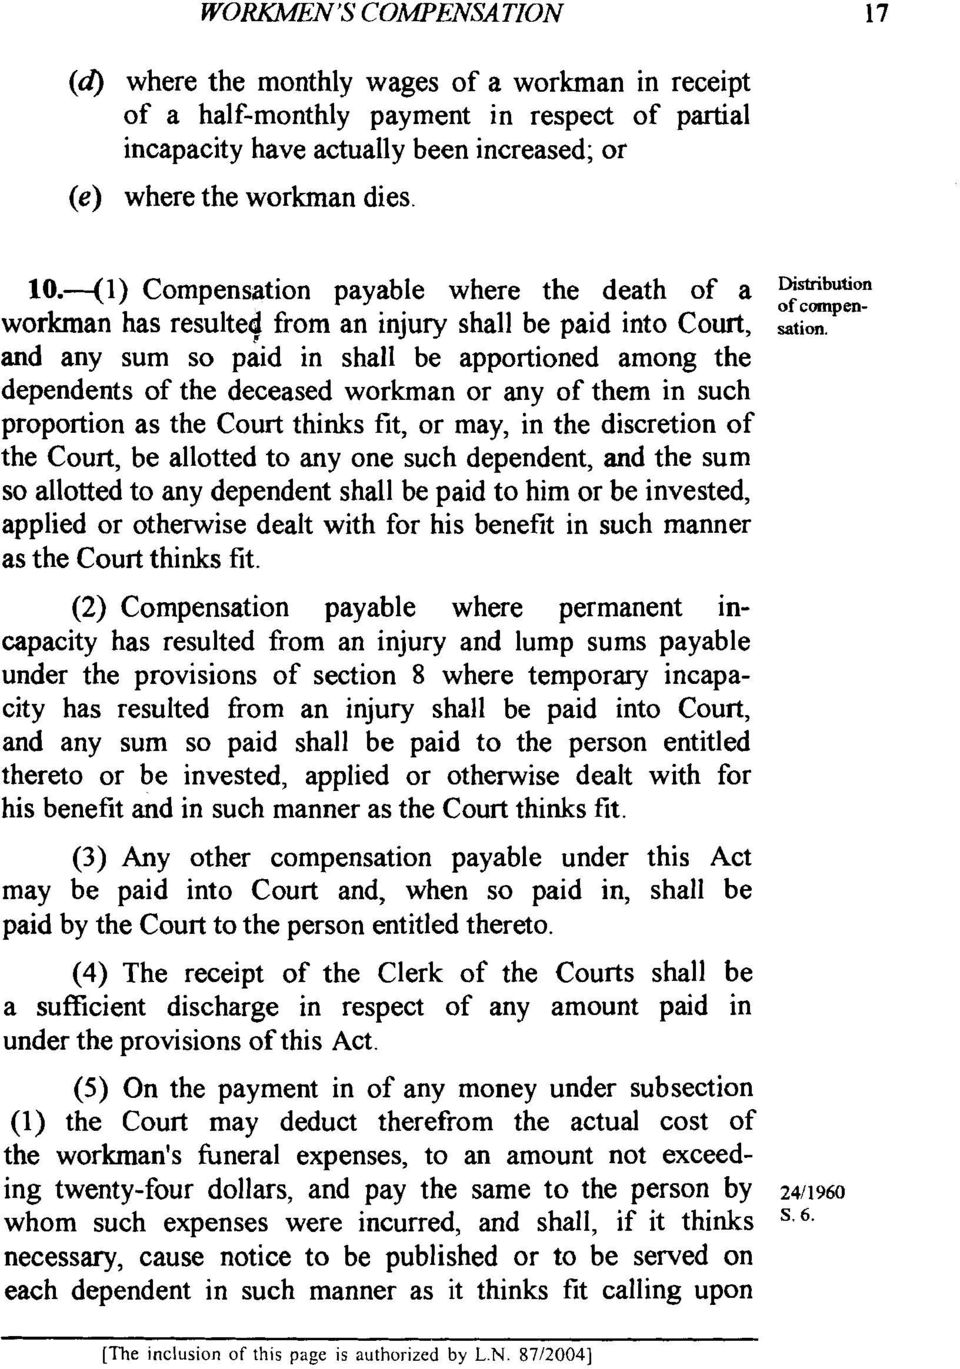 and any sum so piid in shall be apportioned among the dependents of the deceased workman or any of them in such proportion as the Court thinks fit, or may, in the discretion of the Court, be allotted